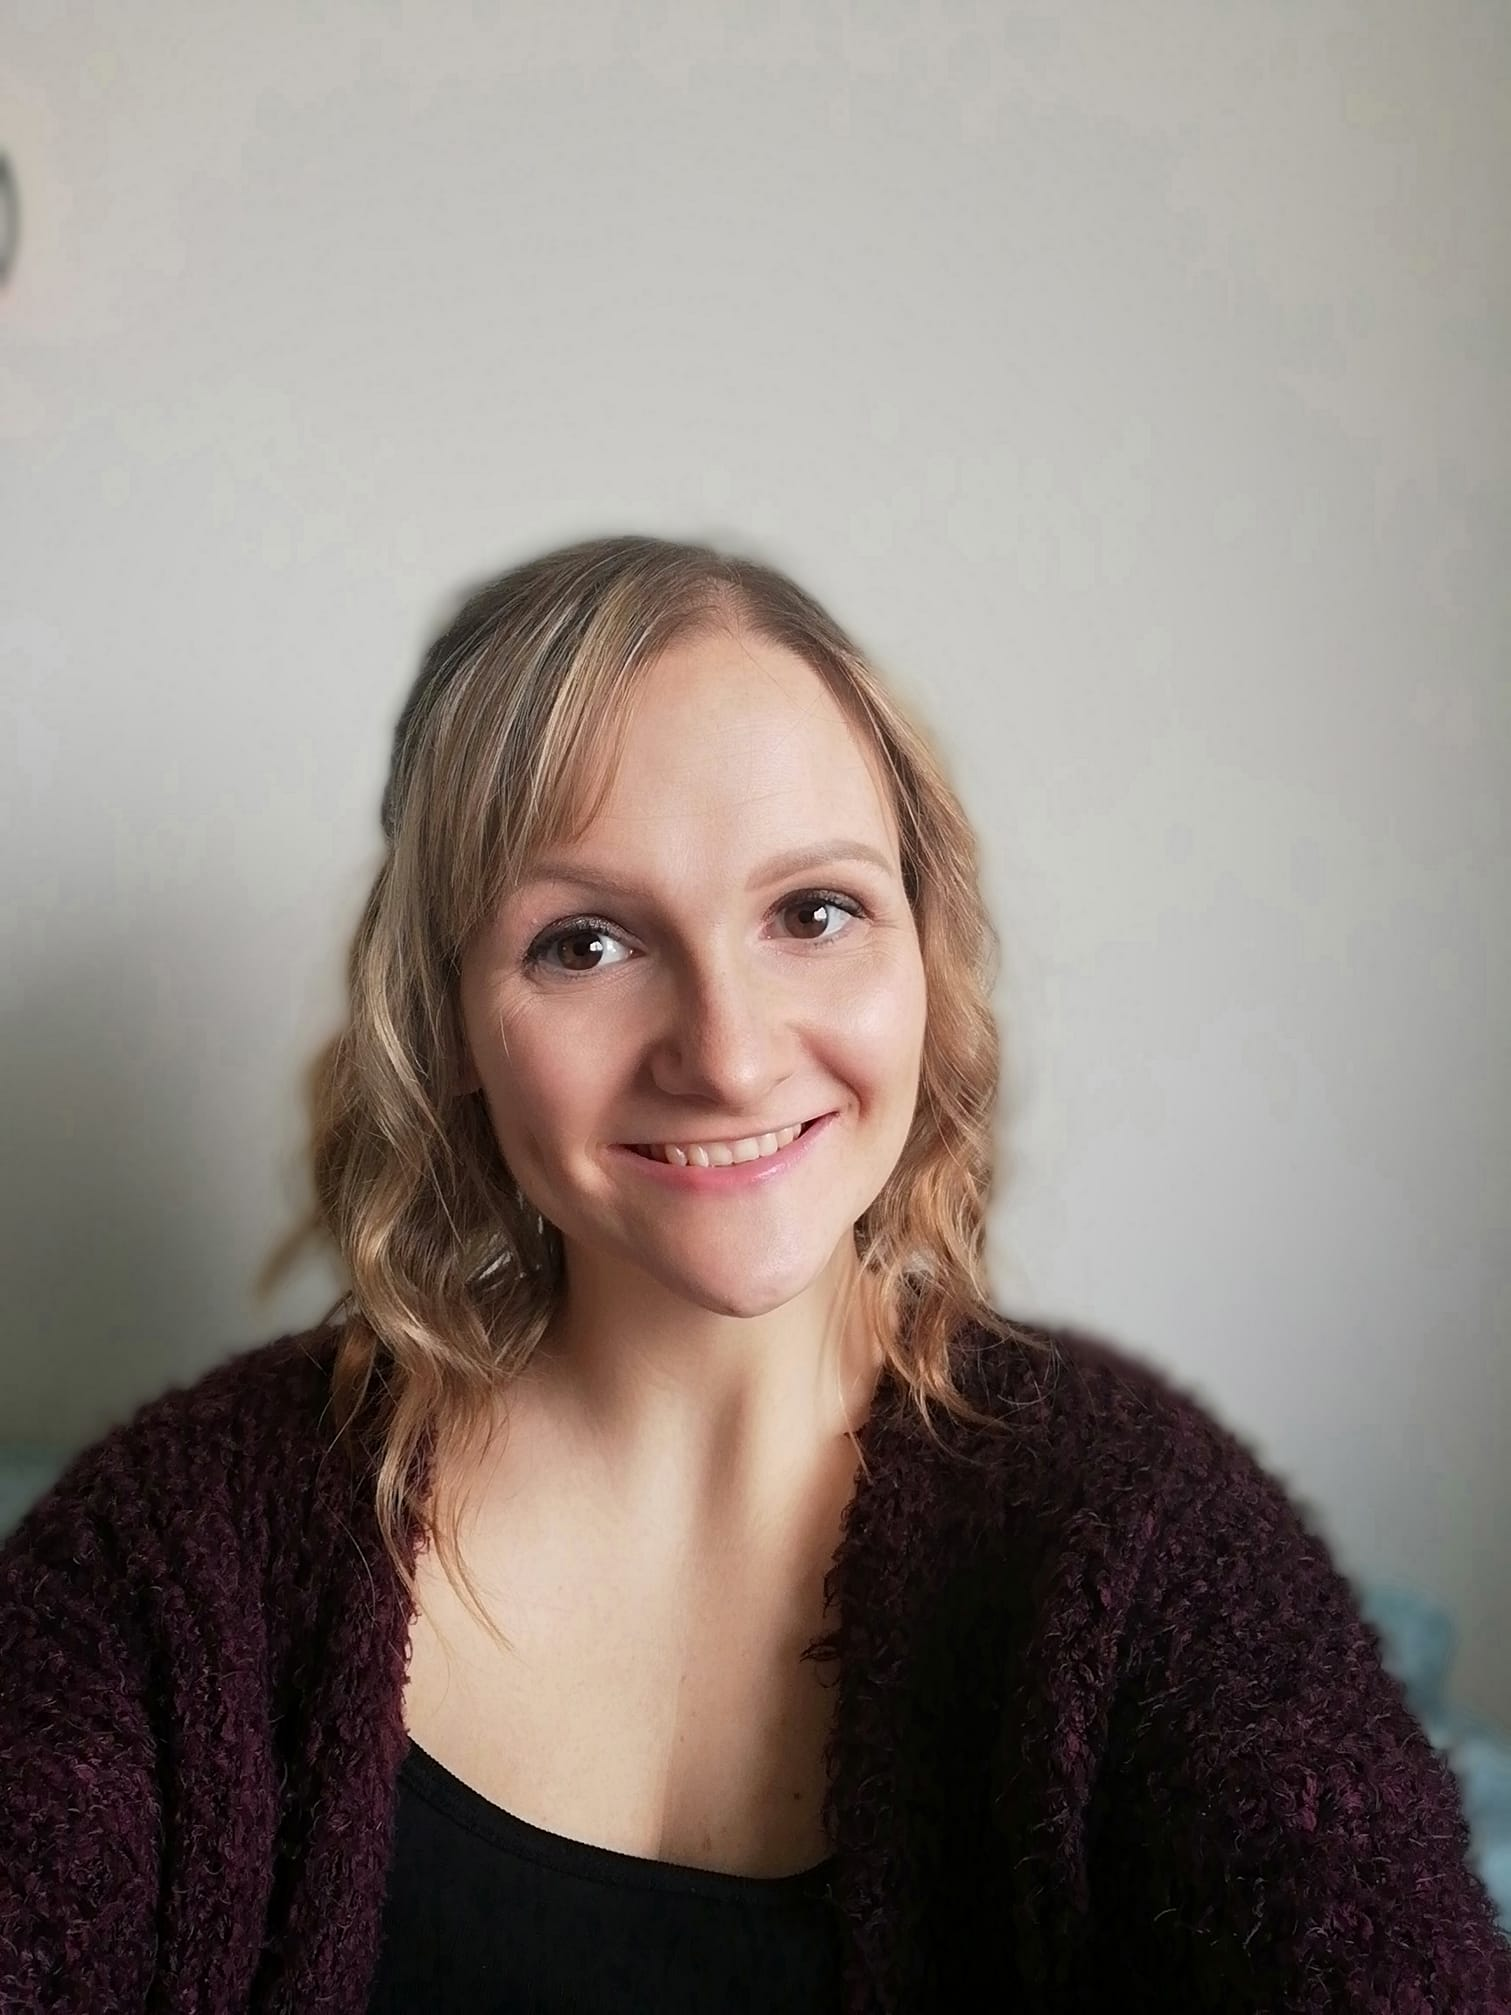 Introducing Kathryn – Reiki practitioner